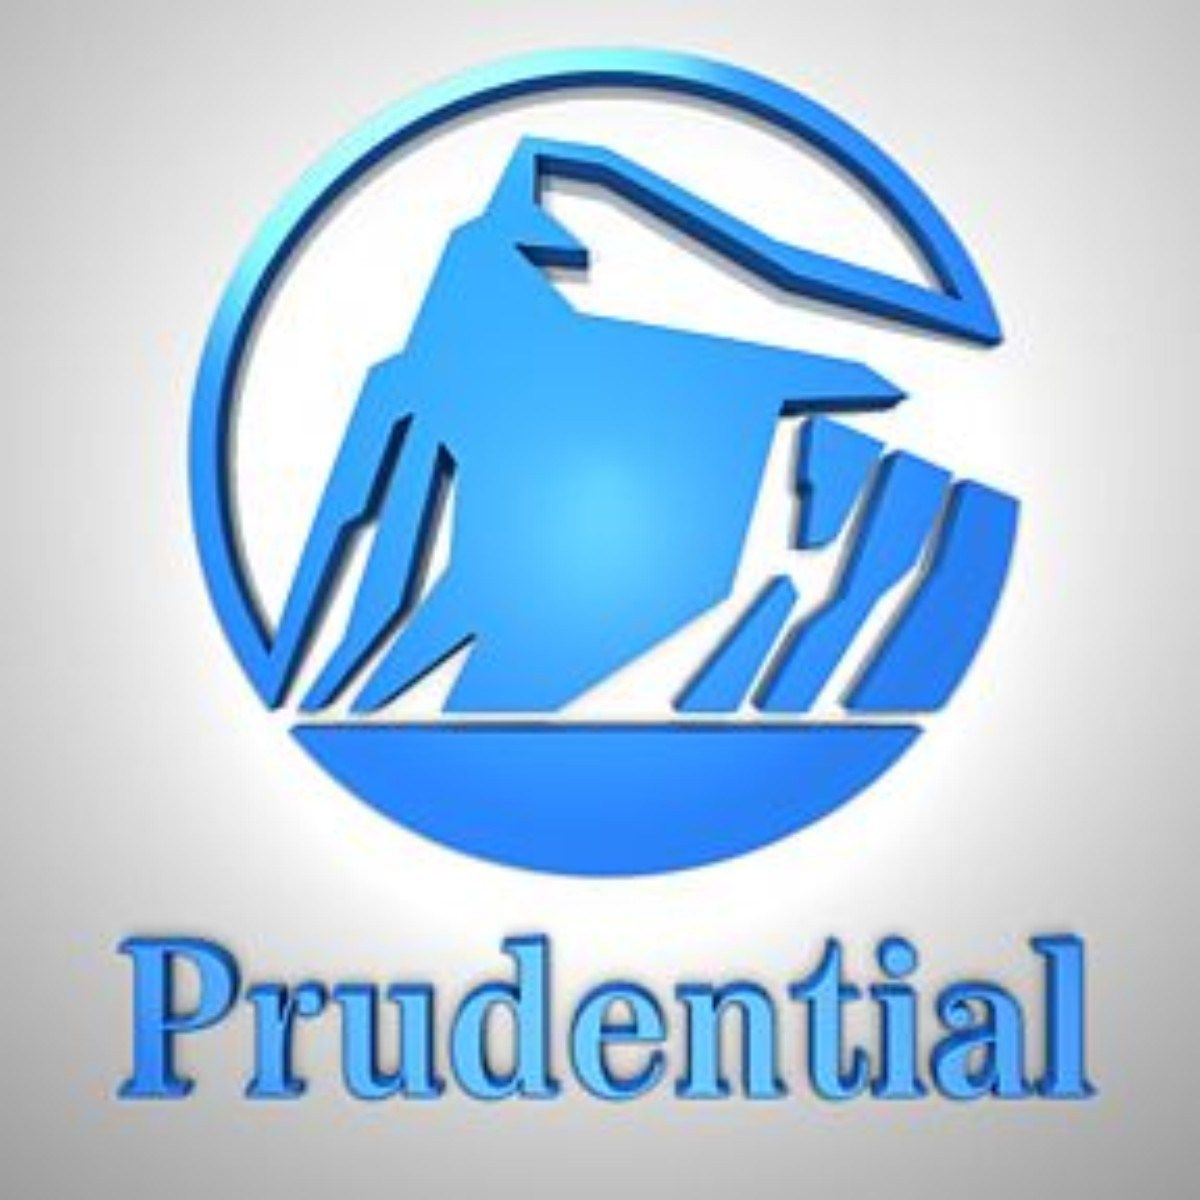 Prudential Term Life Insurance Quotes Online Prudential Financial Life Insurance  Tips Available Tools And